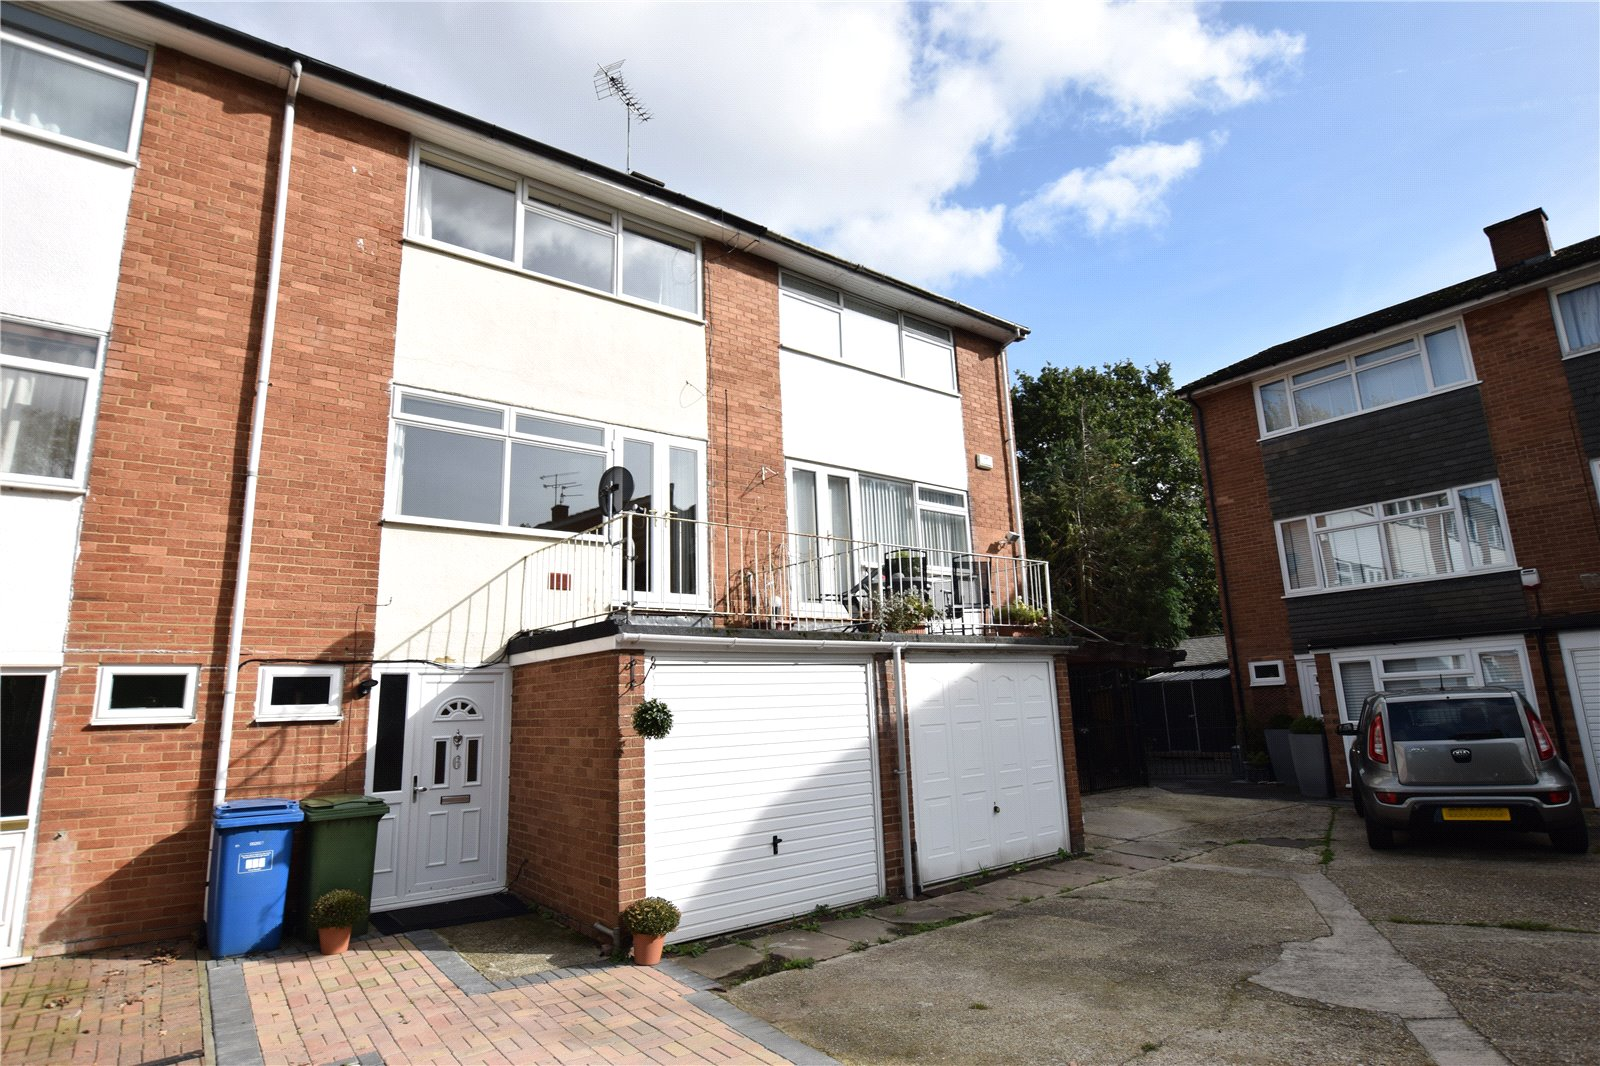 4 Bedrooms Terraced House for sale in Rokeby Close, Bracknell, Berkshire, RG12